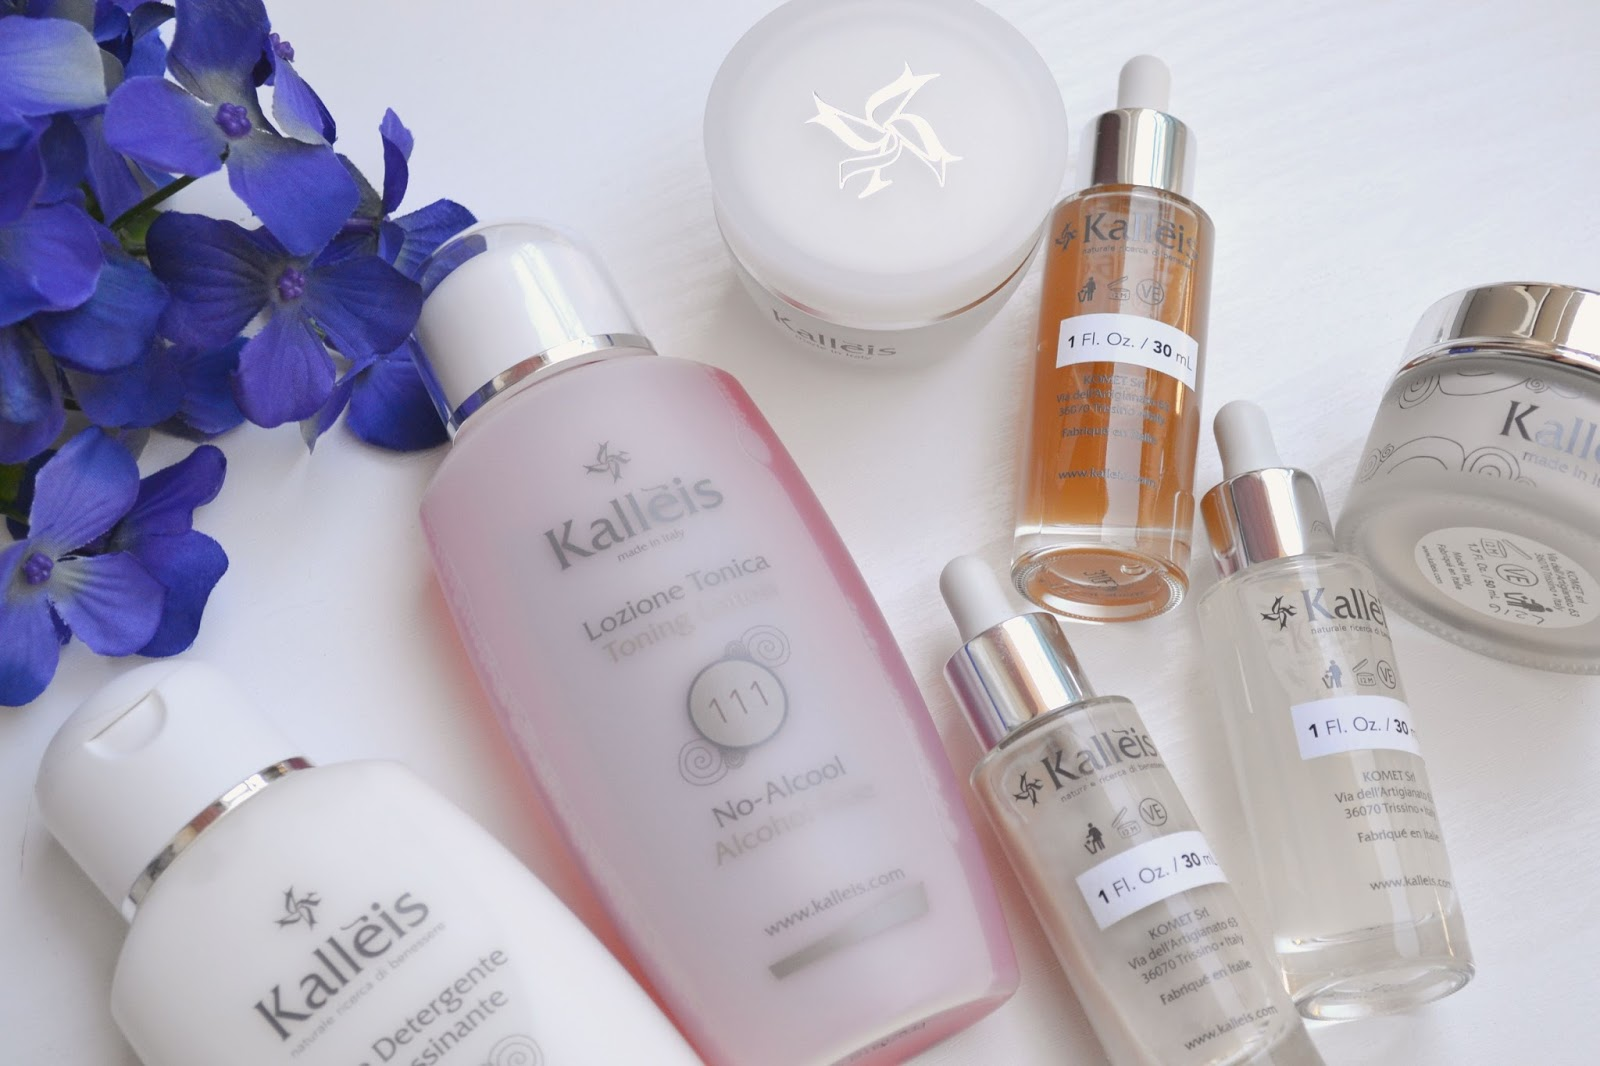 SKINCARE | Kalleis Cosmetics - Made in Italy and New to Canada